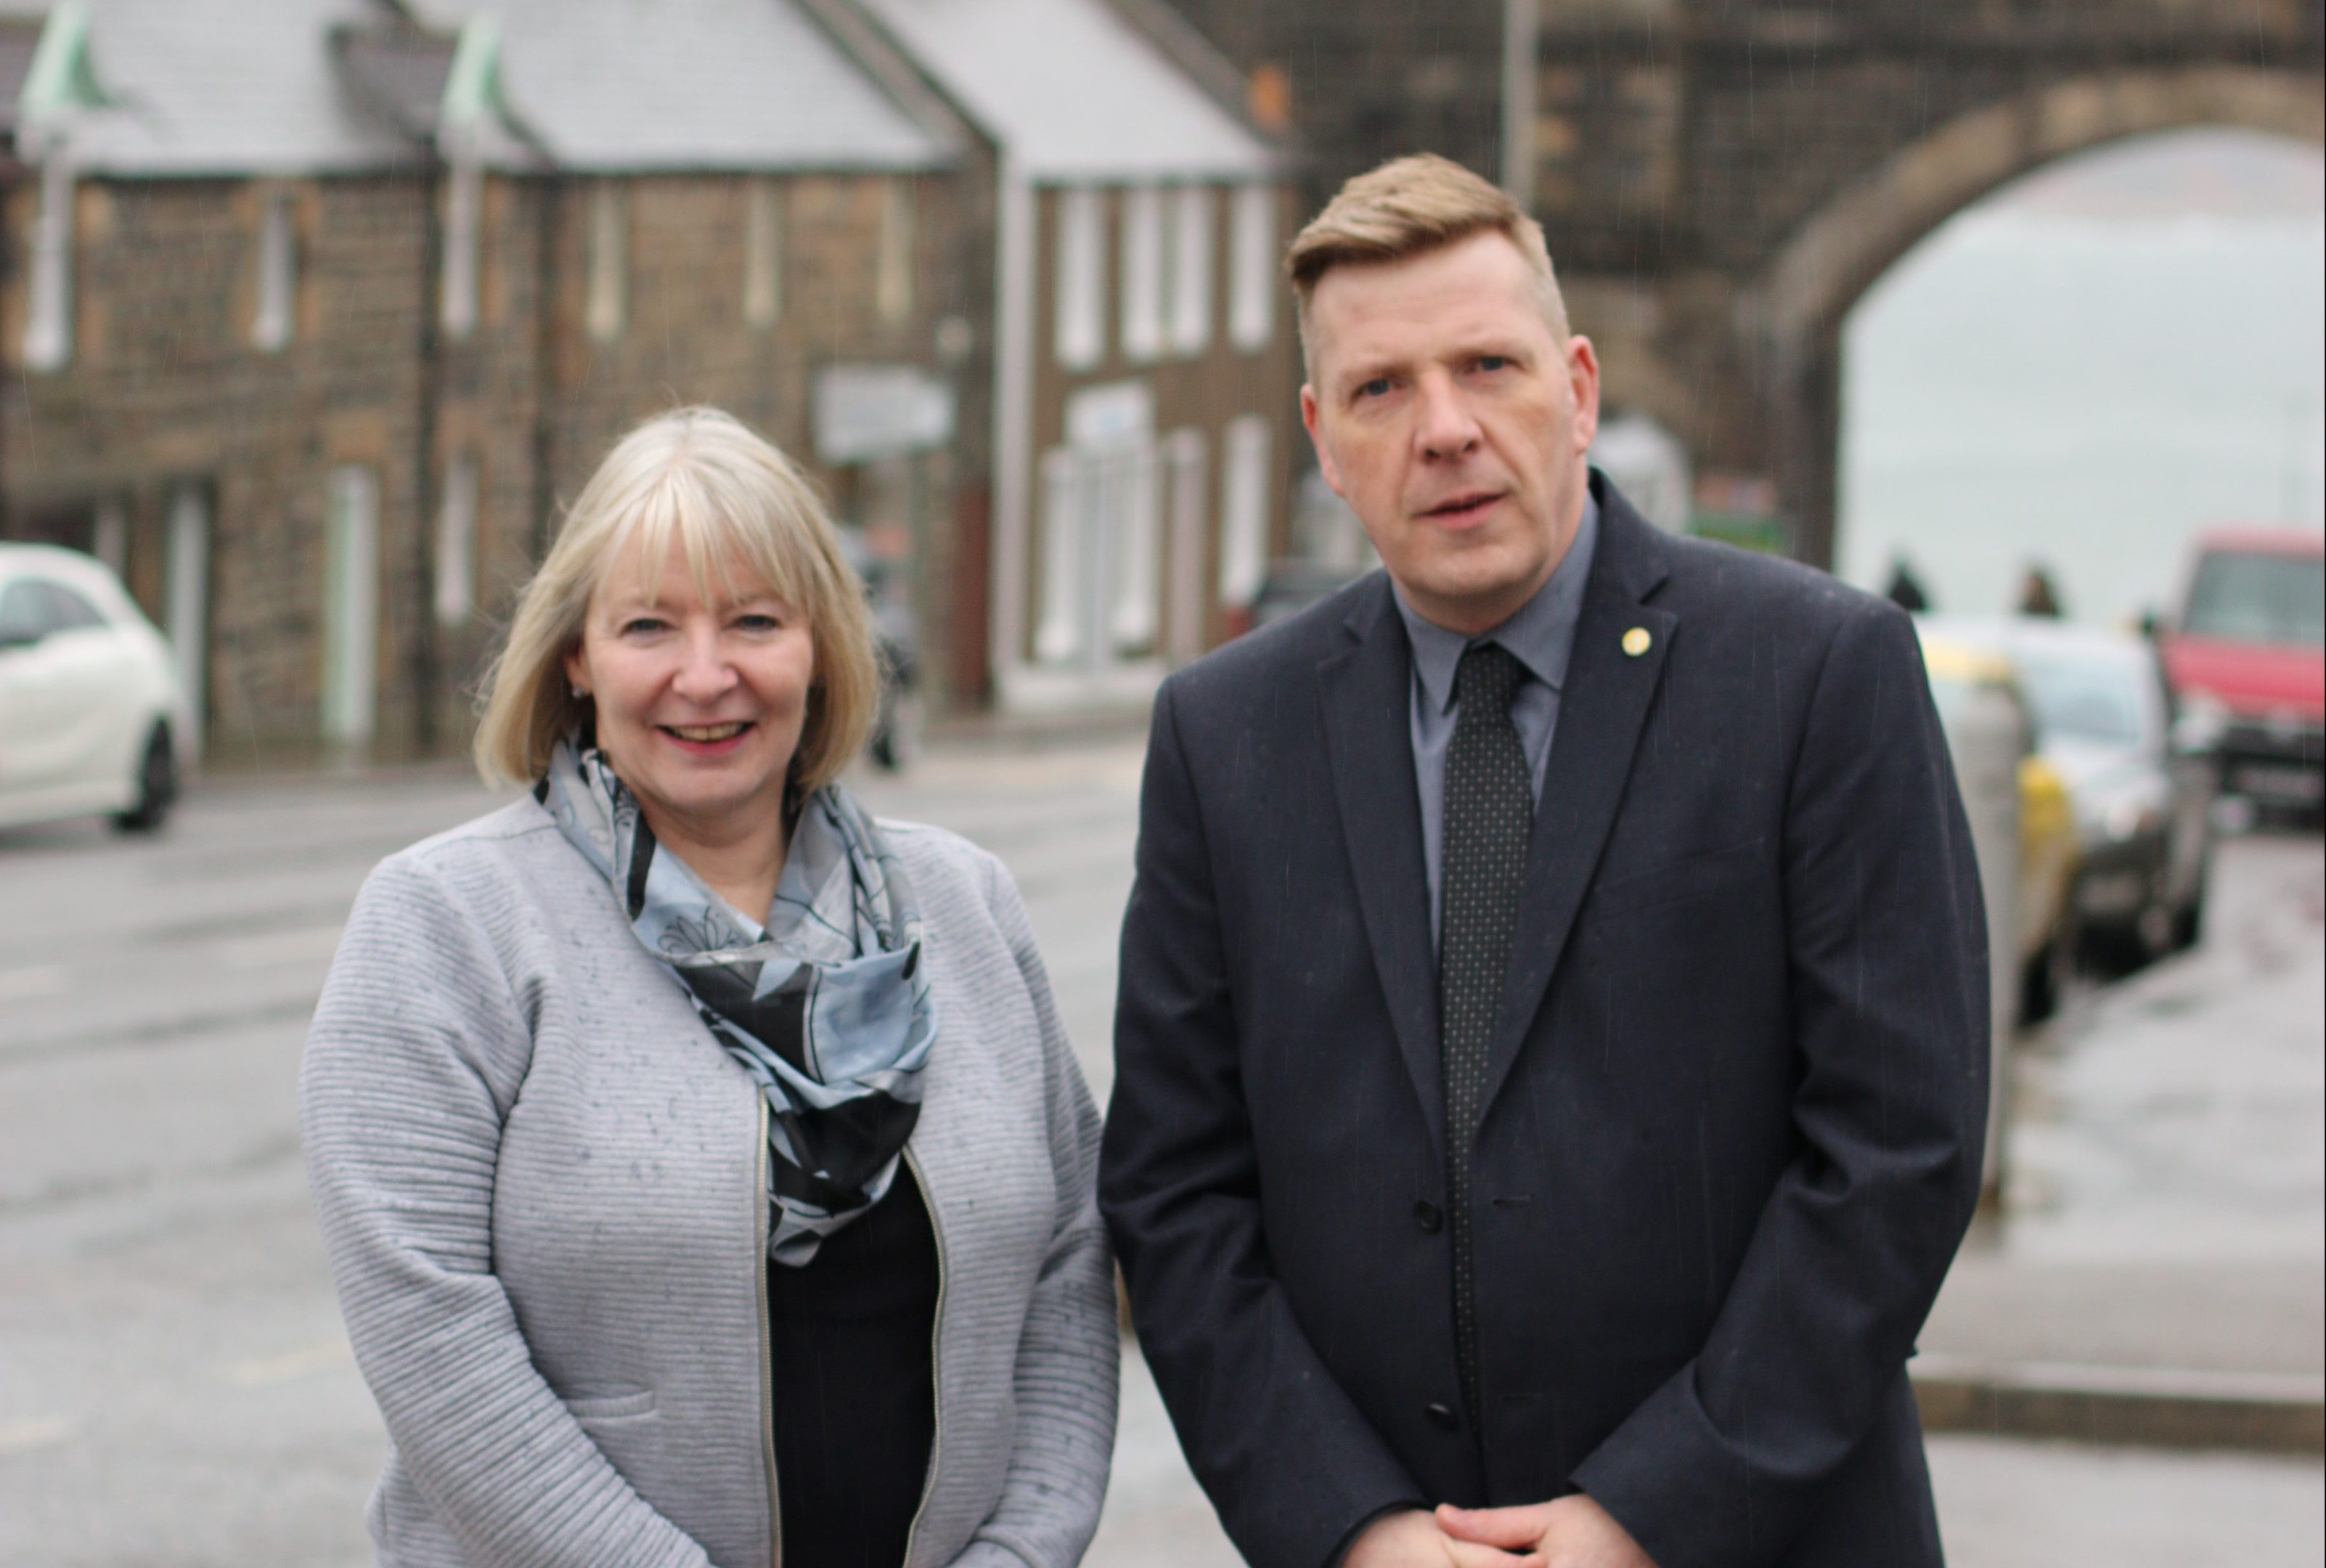 Theresa Coull and Iain Grieve will fight the Keith and Cullen ward for the SNP.